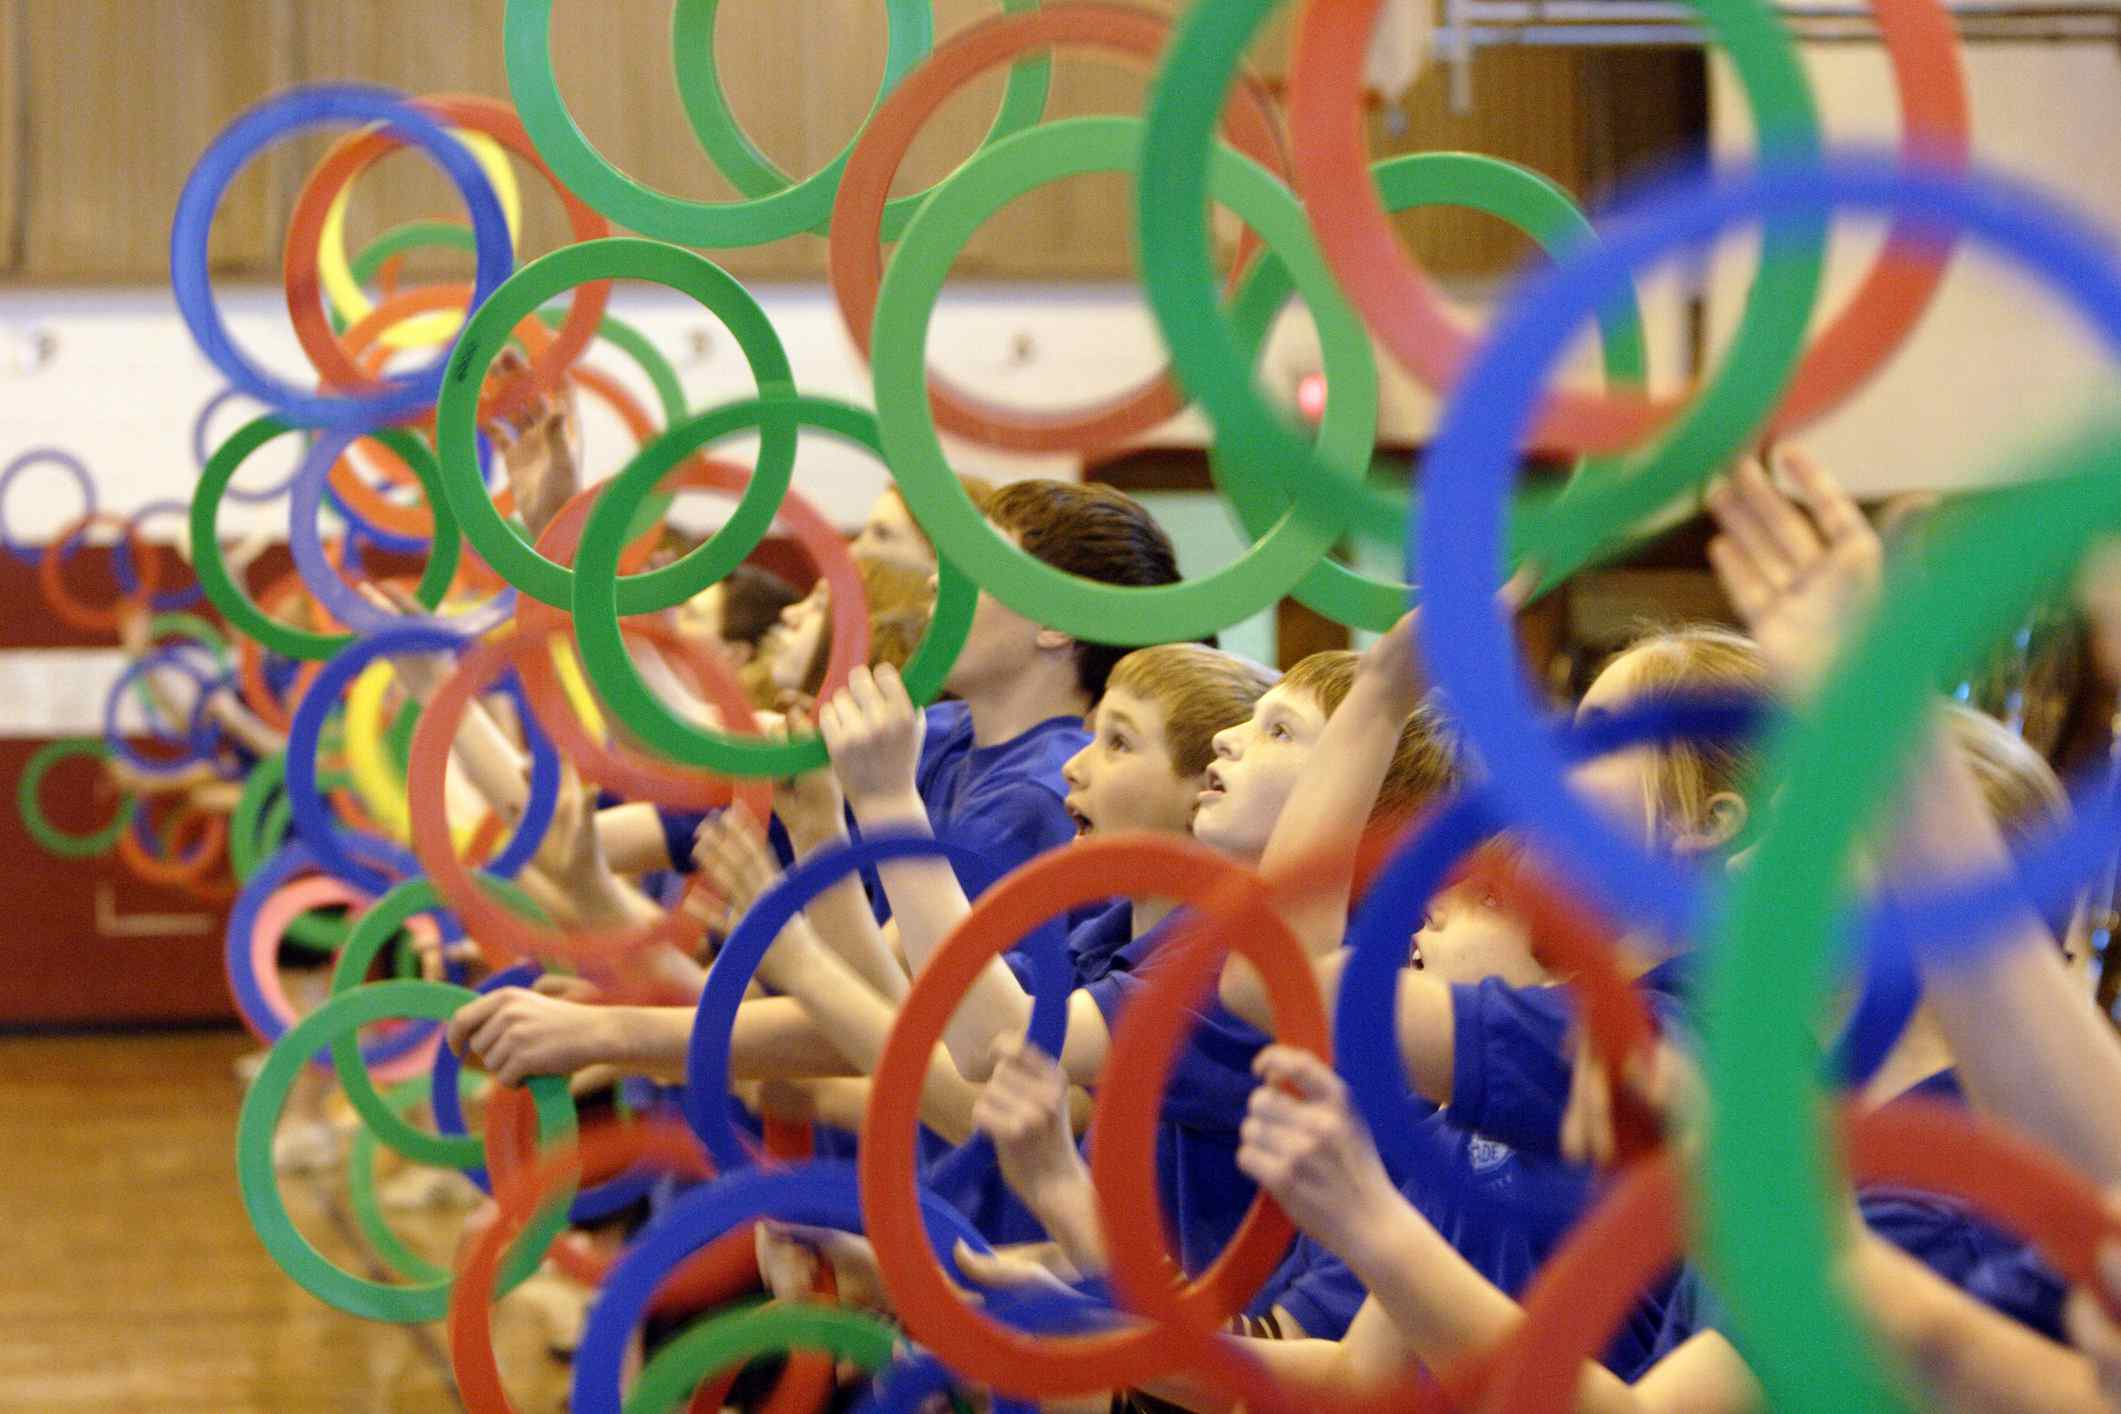 A group of children juggling with rings